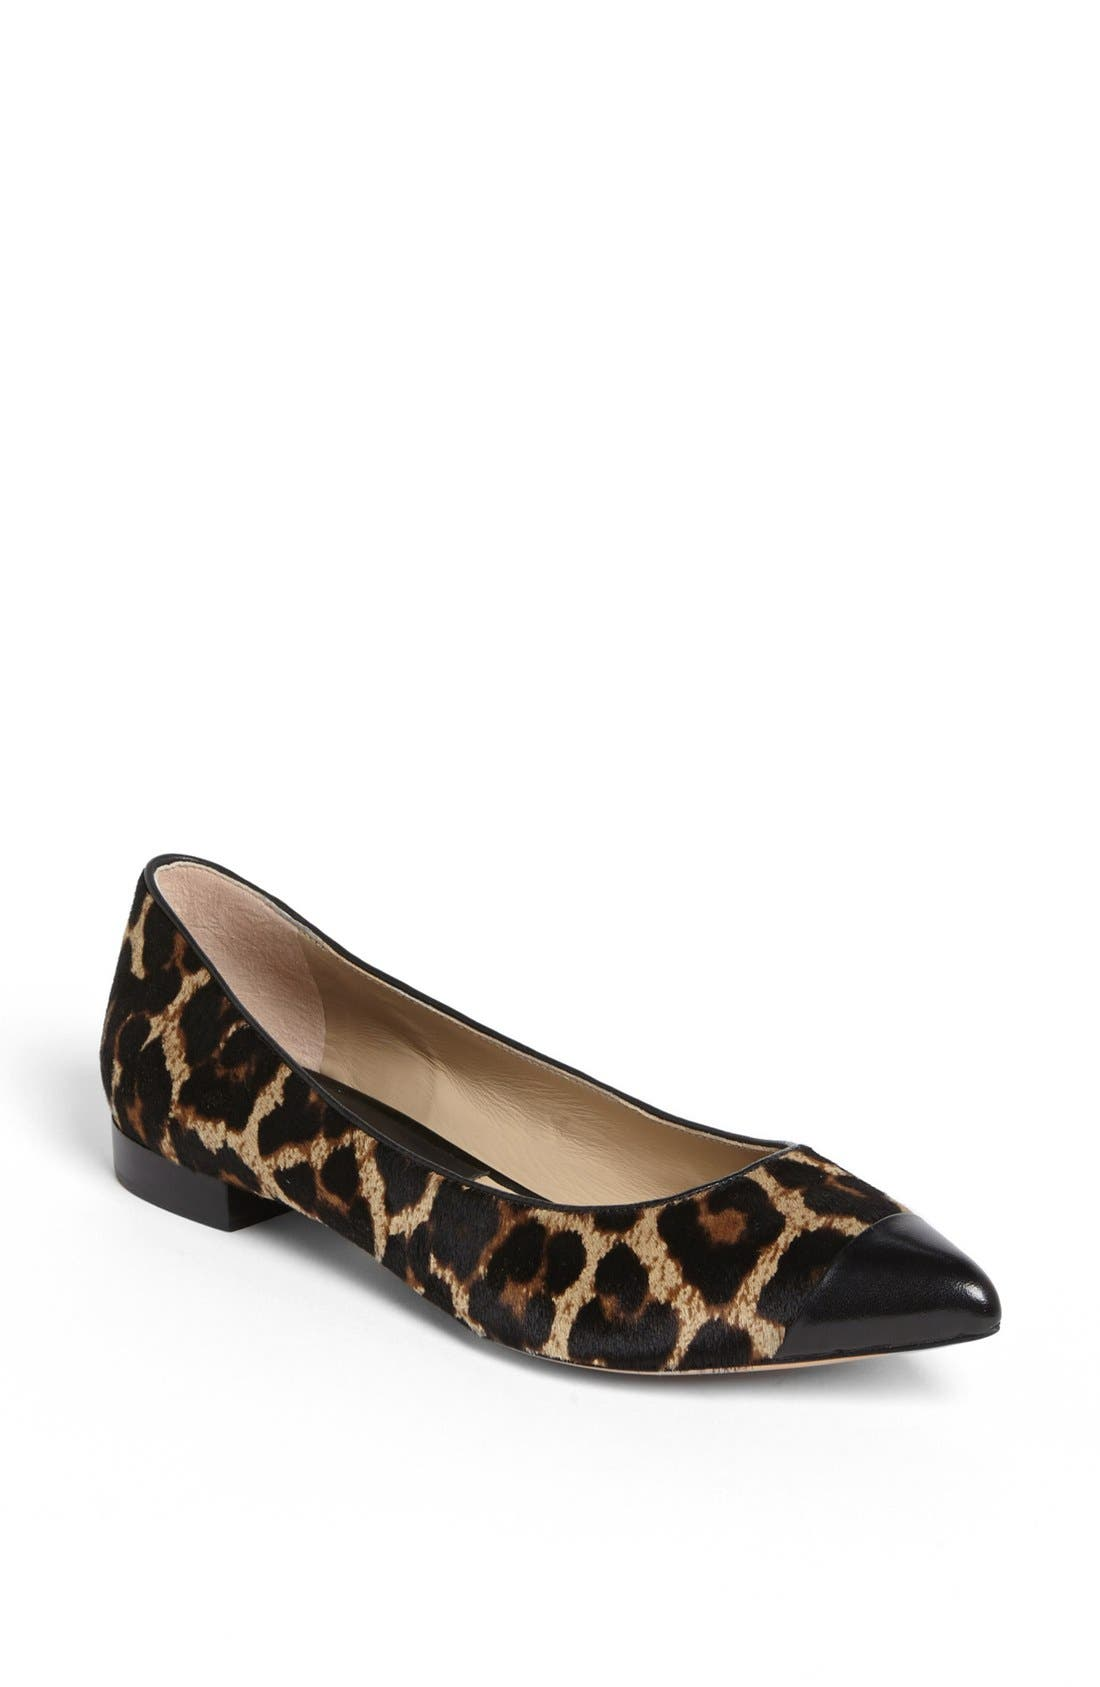 Main Image - Michael Kors 'Janae' Calf Hair Flat